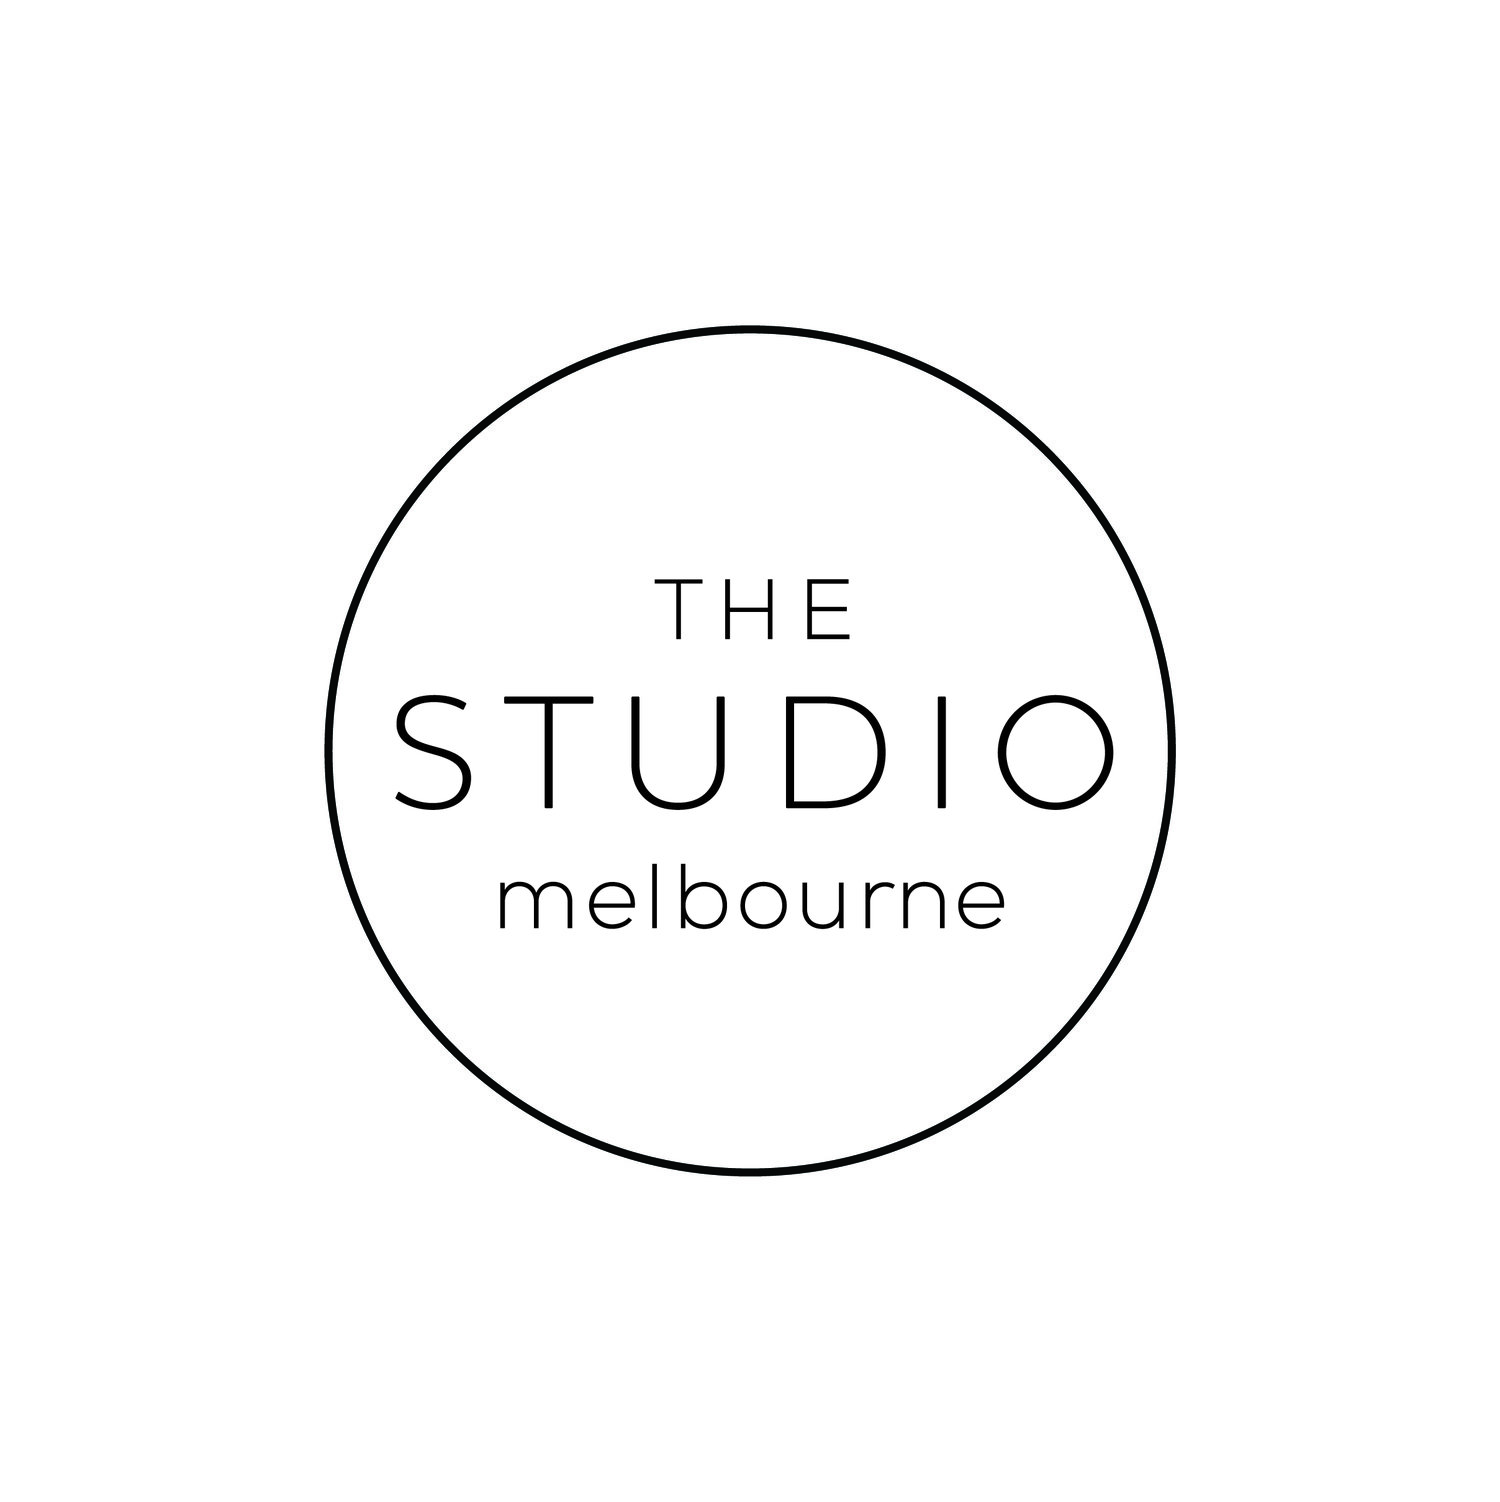 The Studio Melbourne